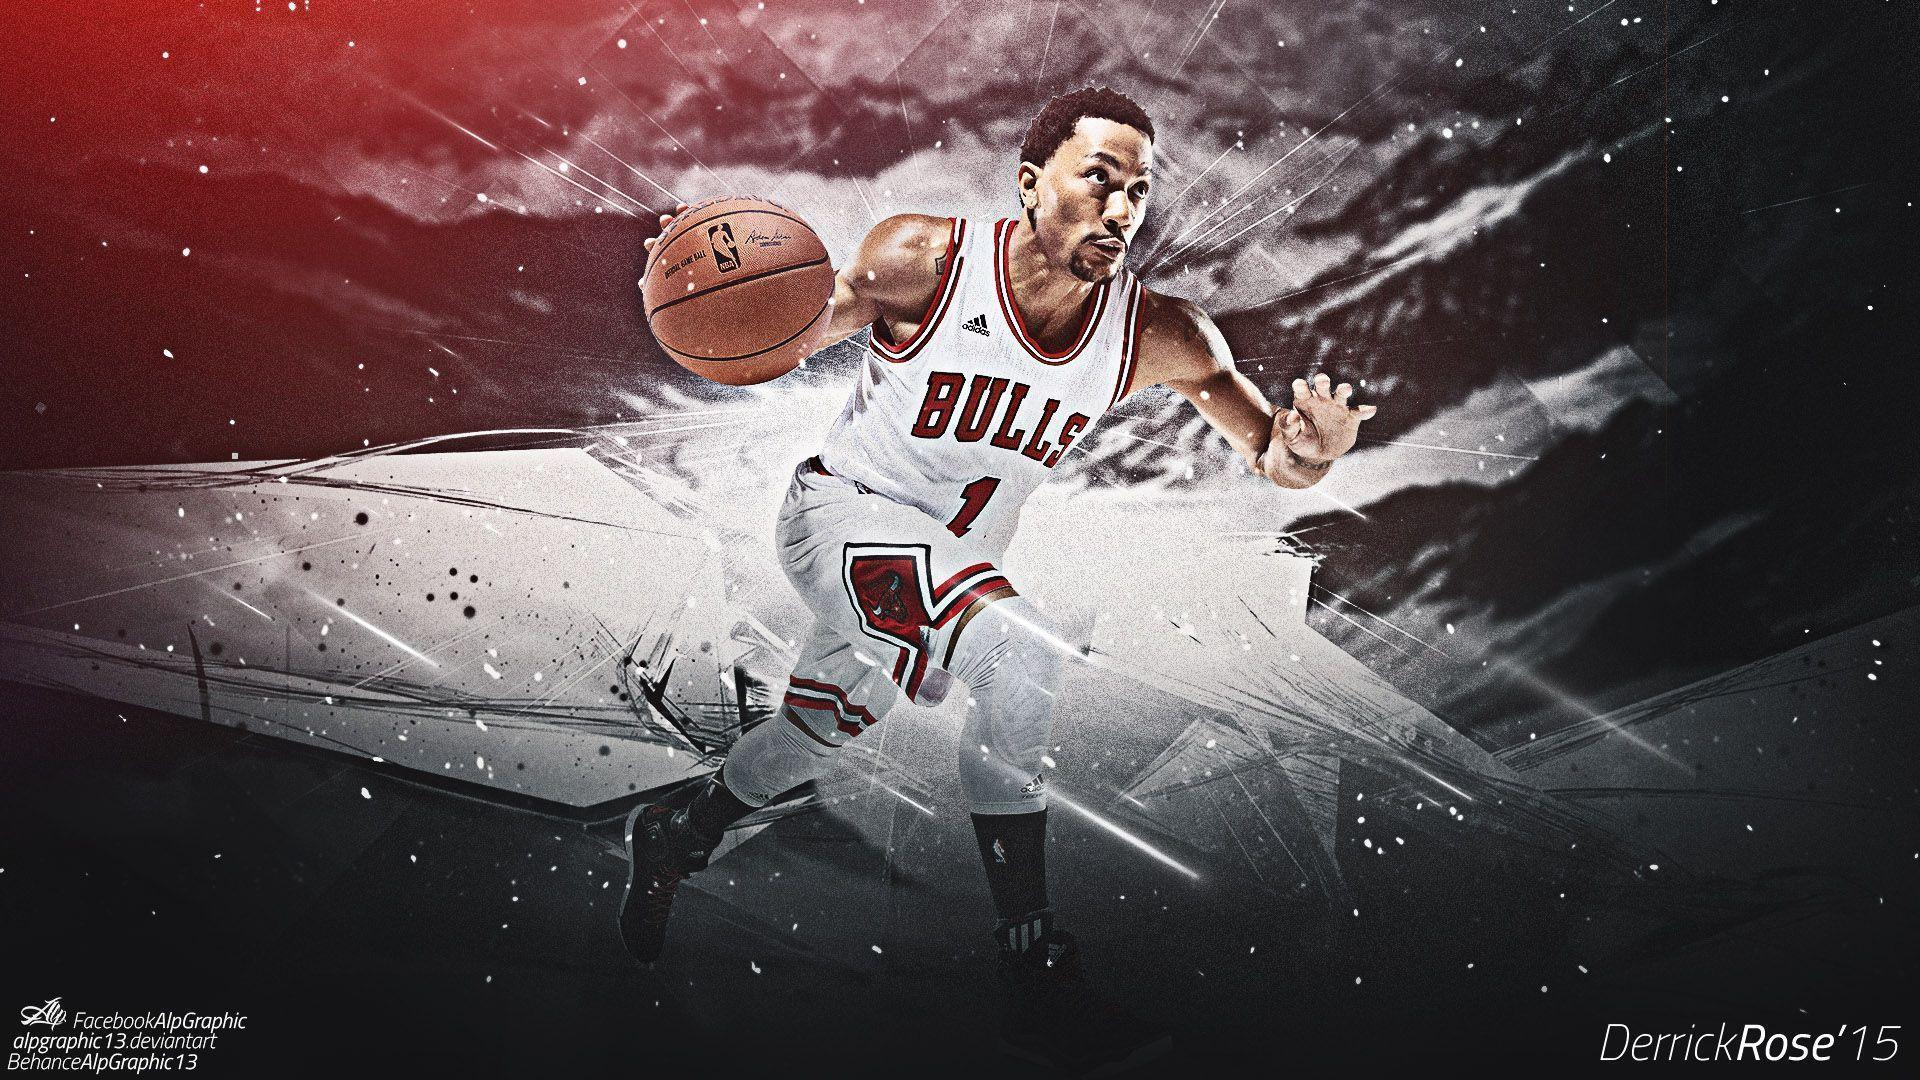 Derrick rose wallpapers 2015 hd wallpaper cave derrick rose 1 chicago bulls 2015 wallpaper wide or hd male voltagebd Image collections